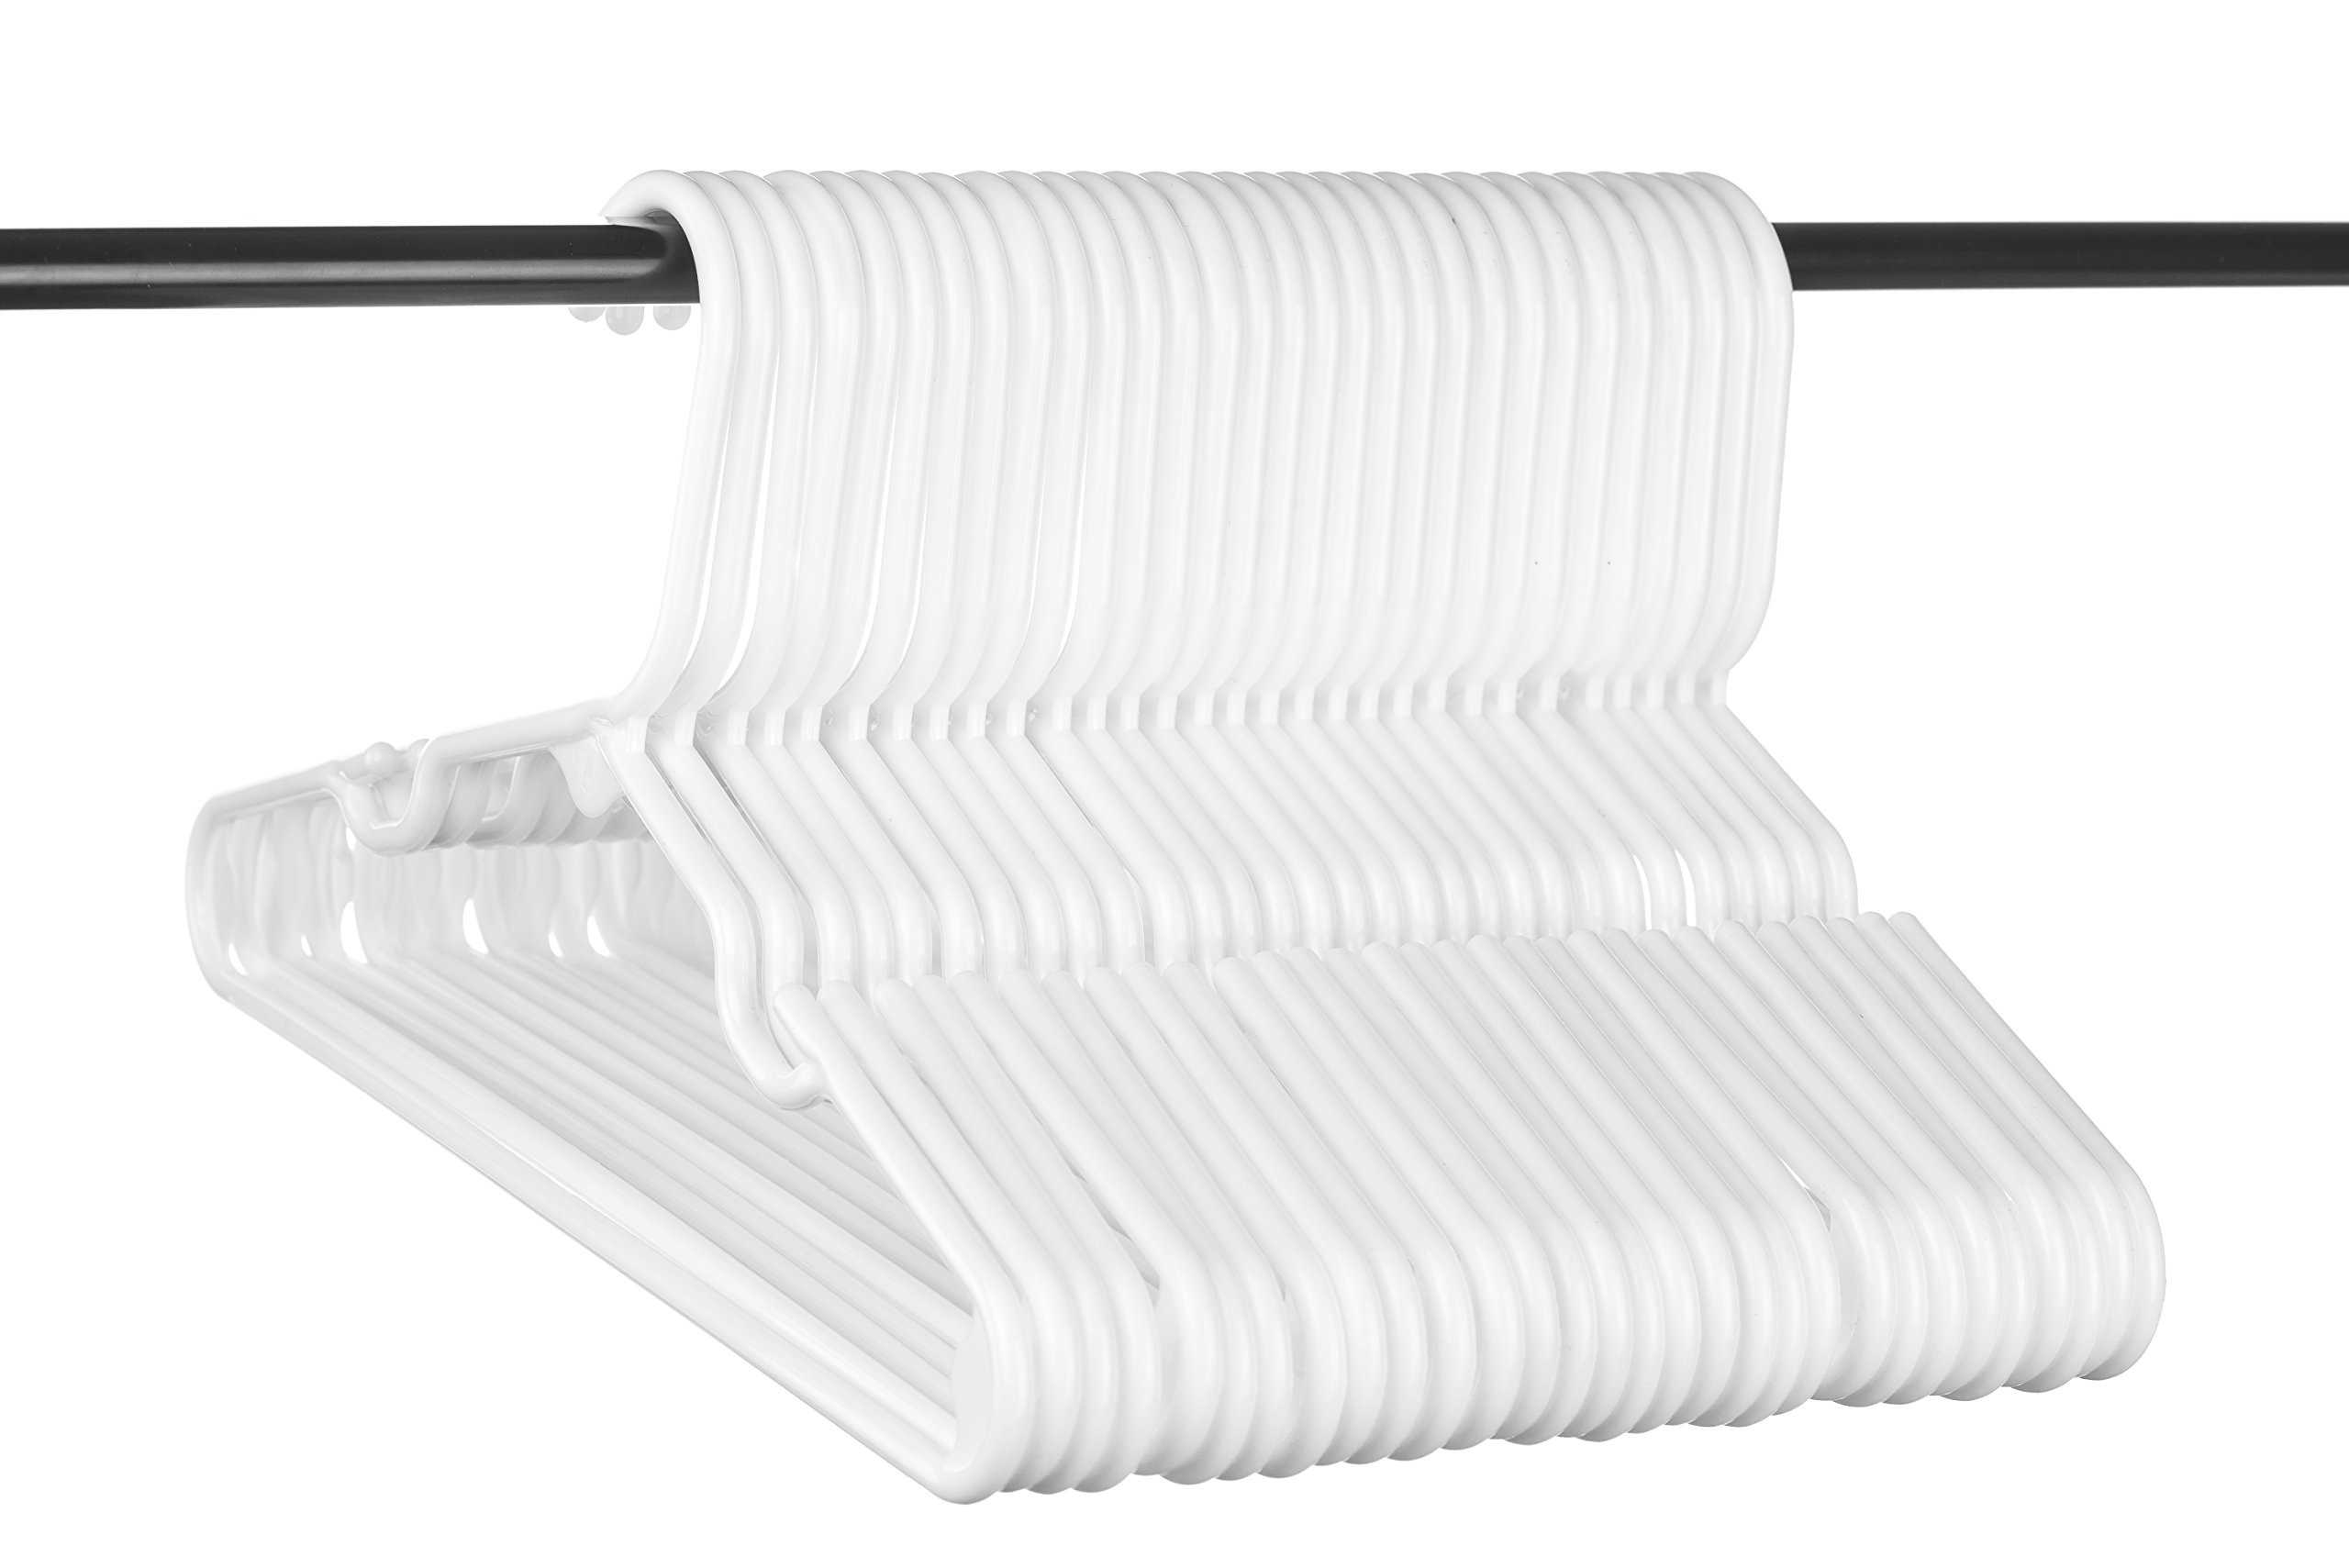 Neaties Children's Size White Plastic Hangers, USA Made Long Lasting Tubular Hangers, Set of 30 by Neaties